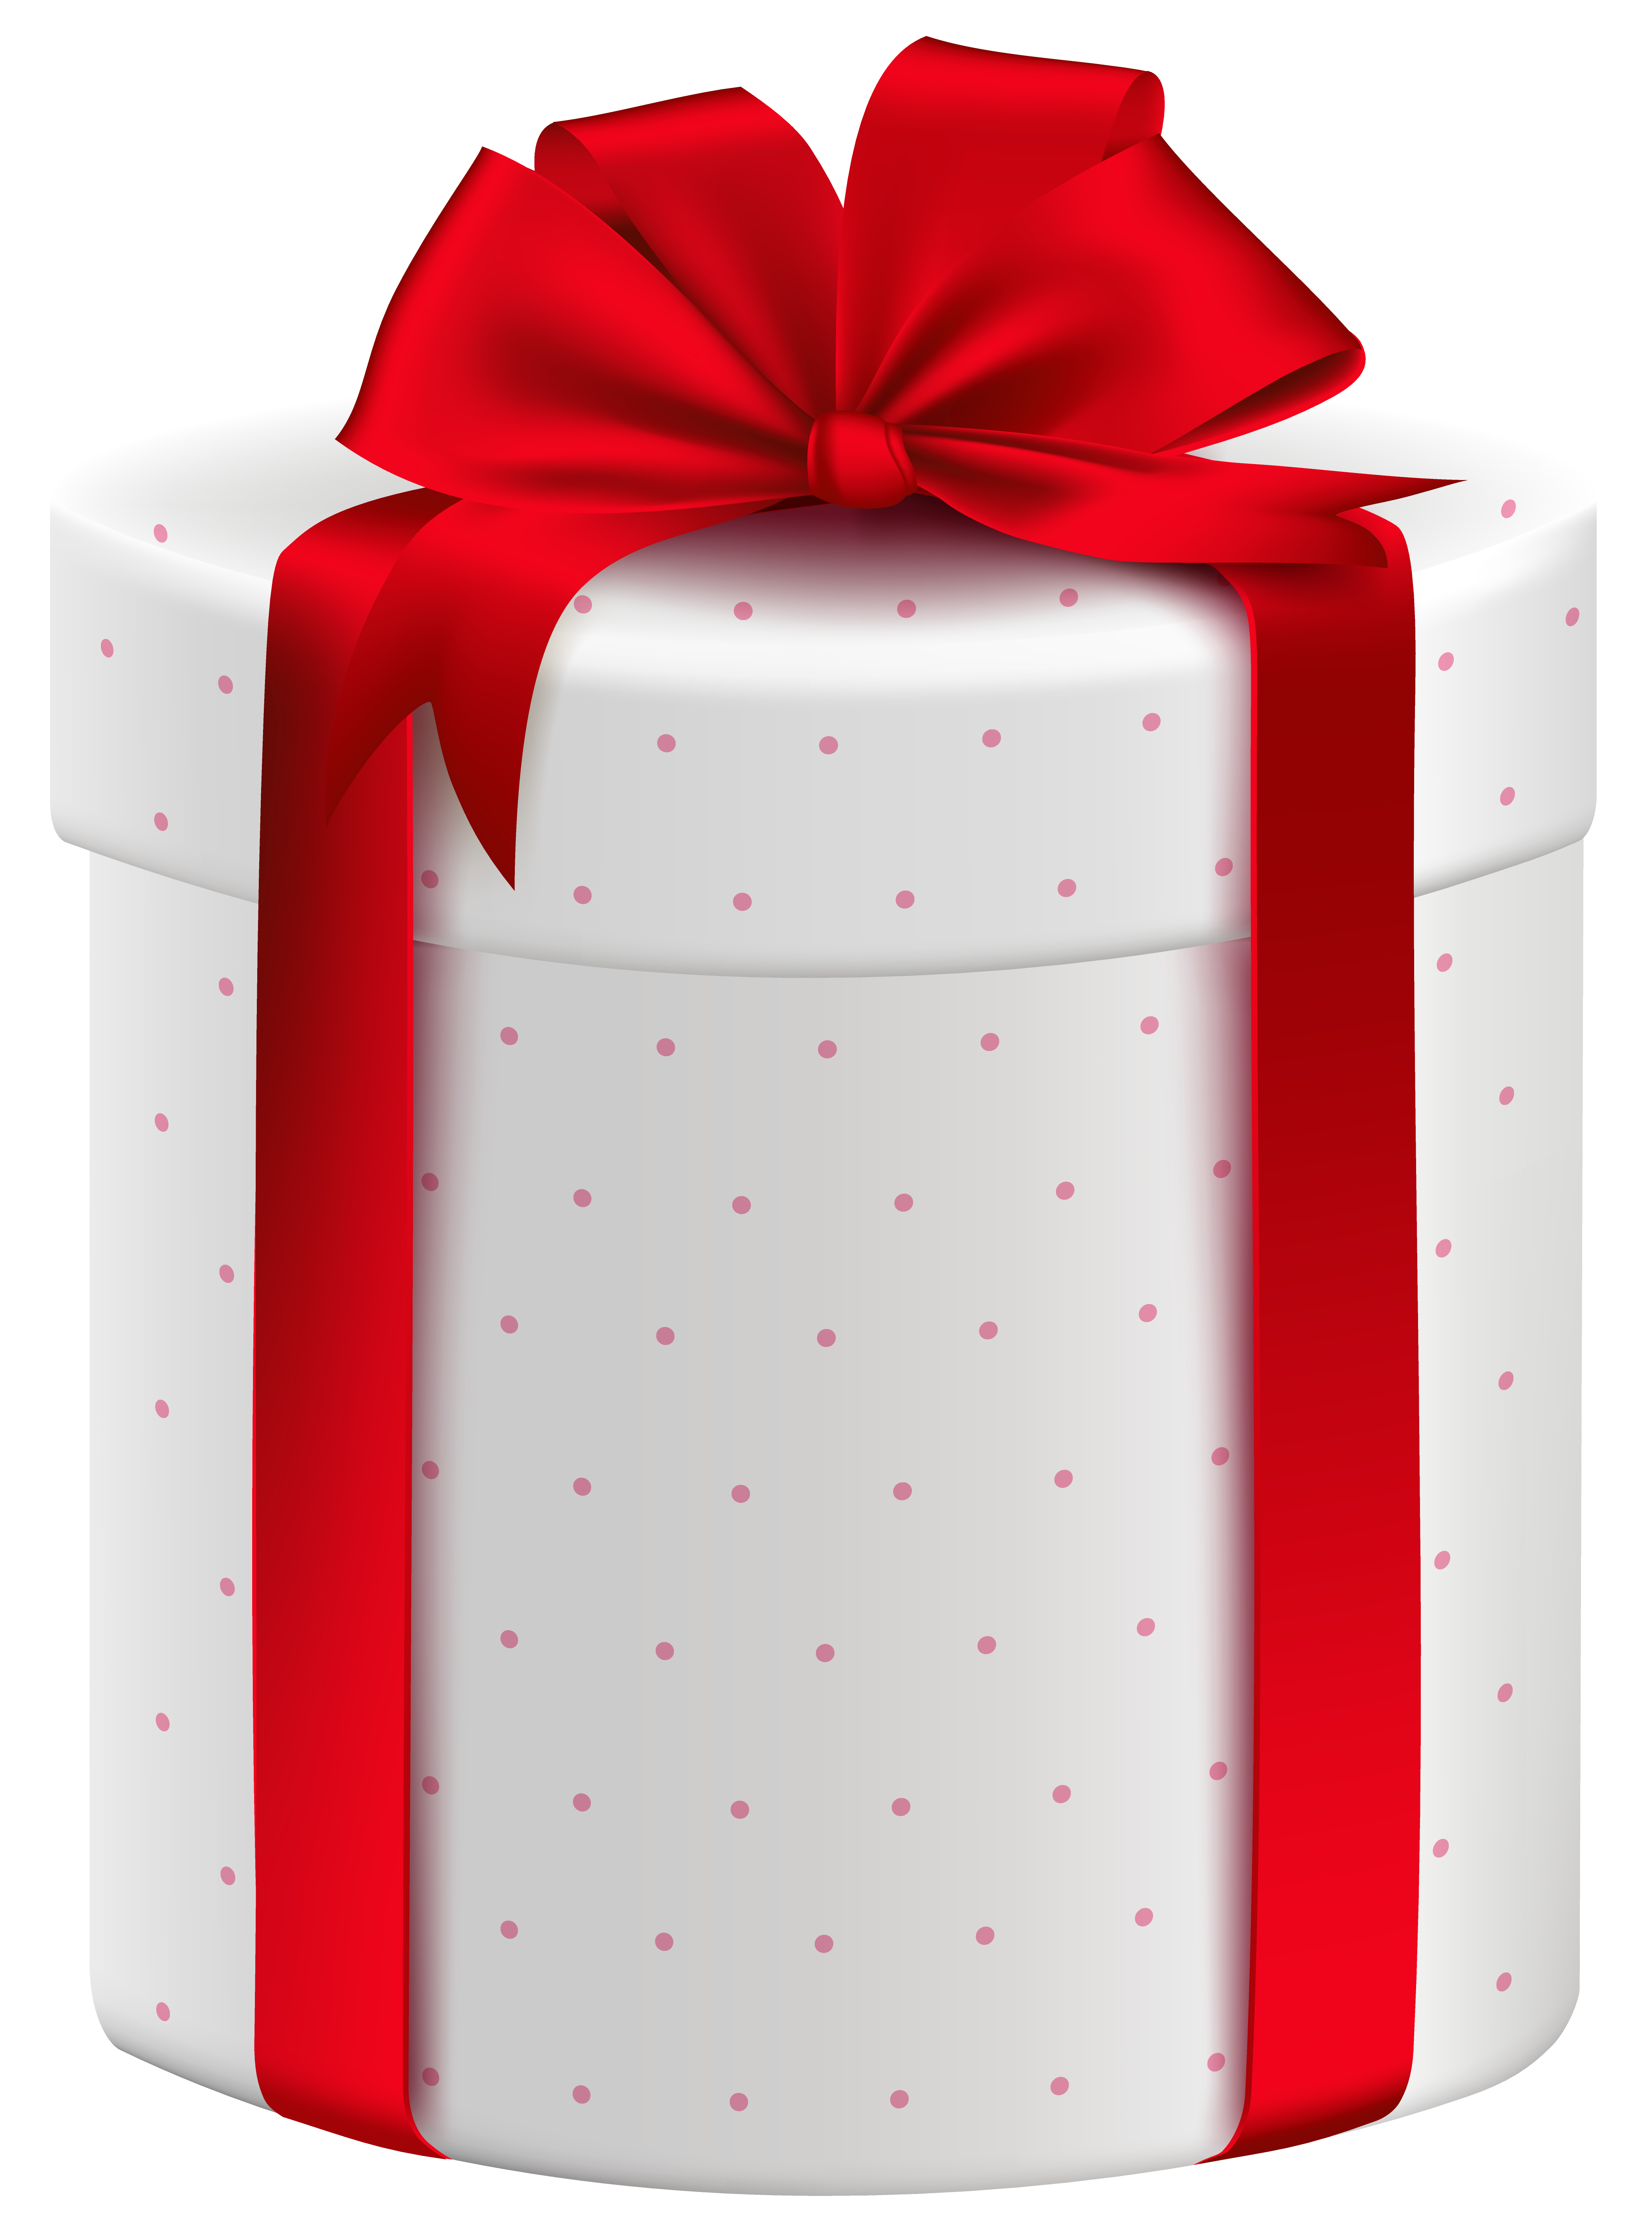 White gift box with red bow png clipart image whats in the box white gift box with red bow png clipart image negle Image collections